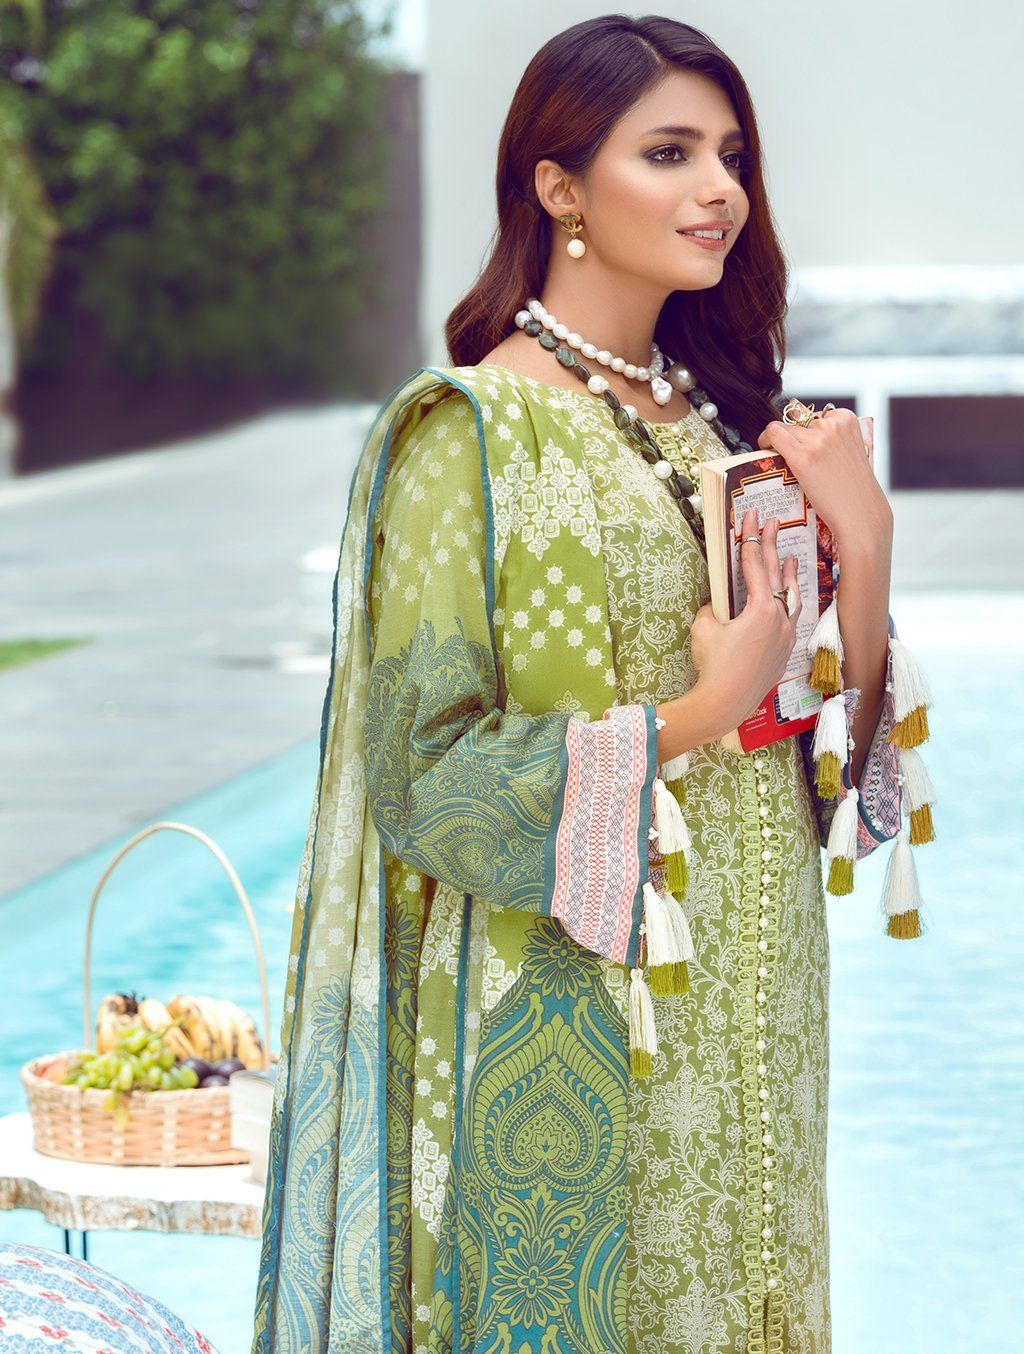 3 Piece Unstitched Printed Lawn Suit KLA-9096 Khas Lawn 2021 - Volume 1 FASUNSLAD